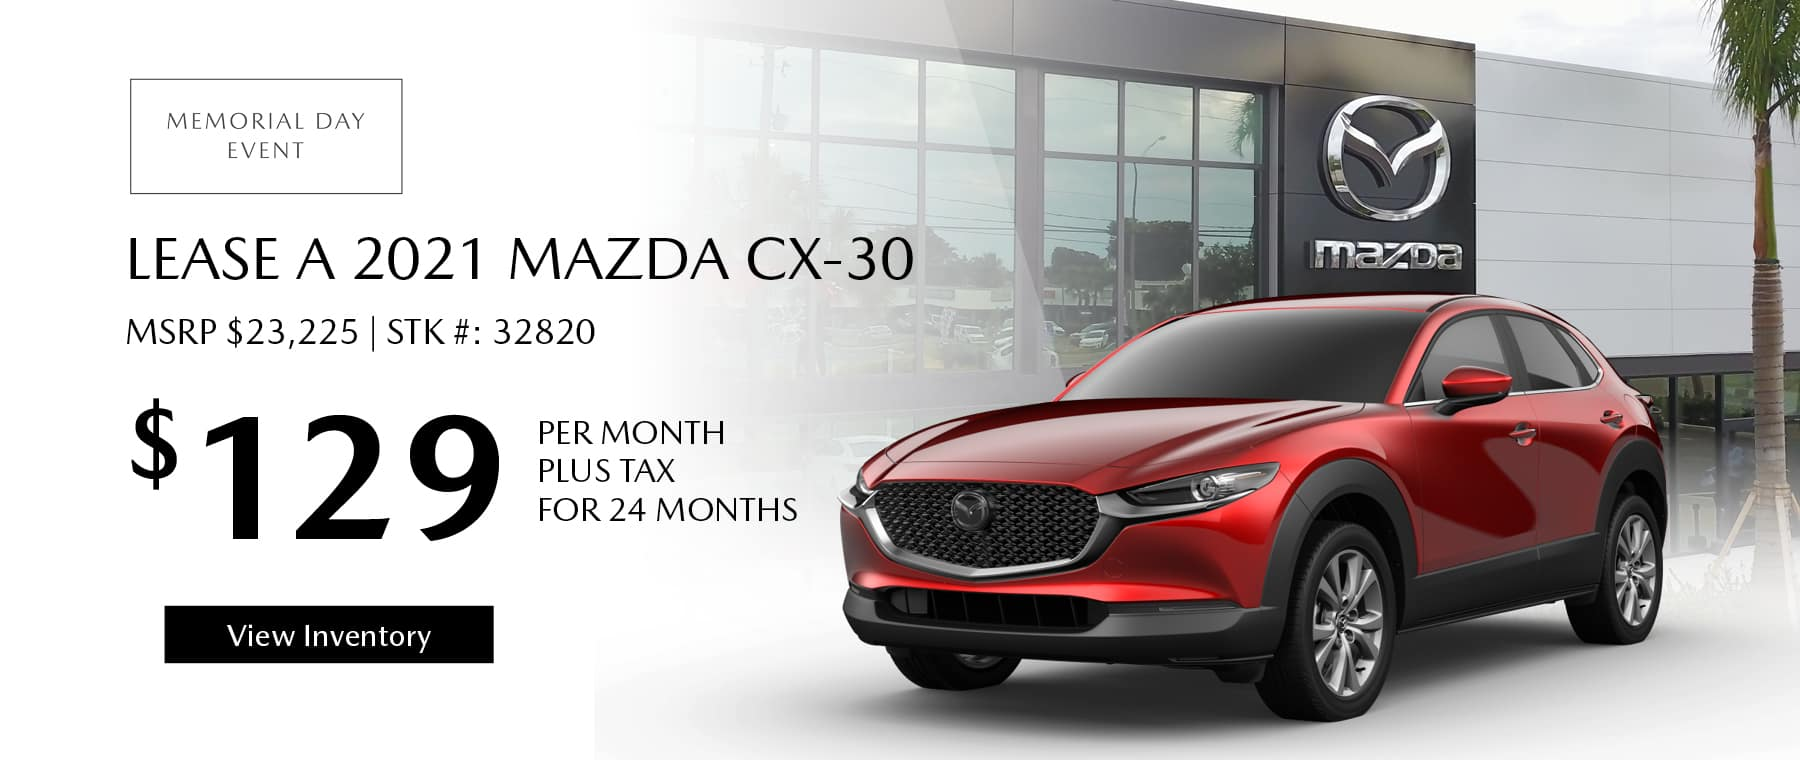 Lease the 2021 Mazda CX-30 for $129 per month, plus tax for 24 months. Click or tap here to view our inventory.